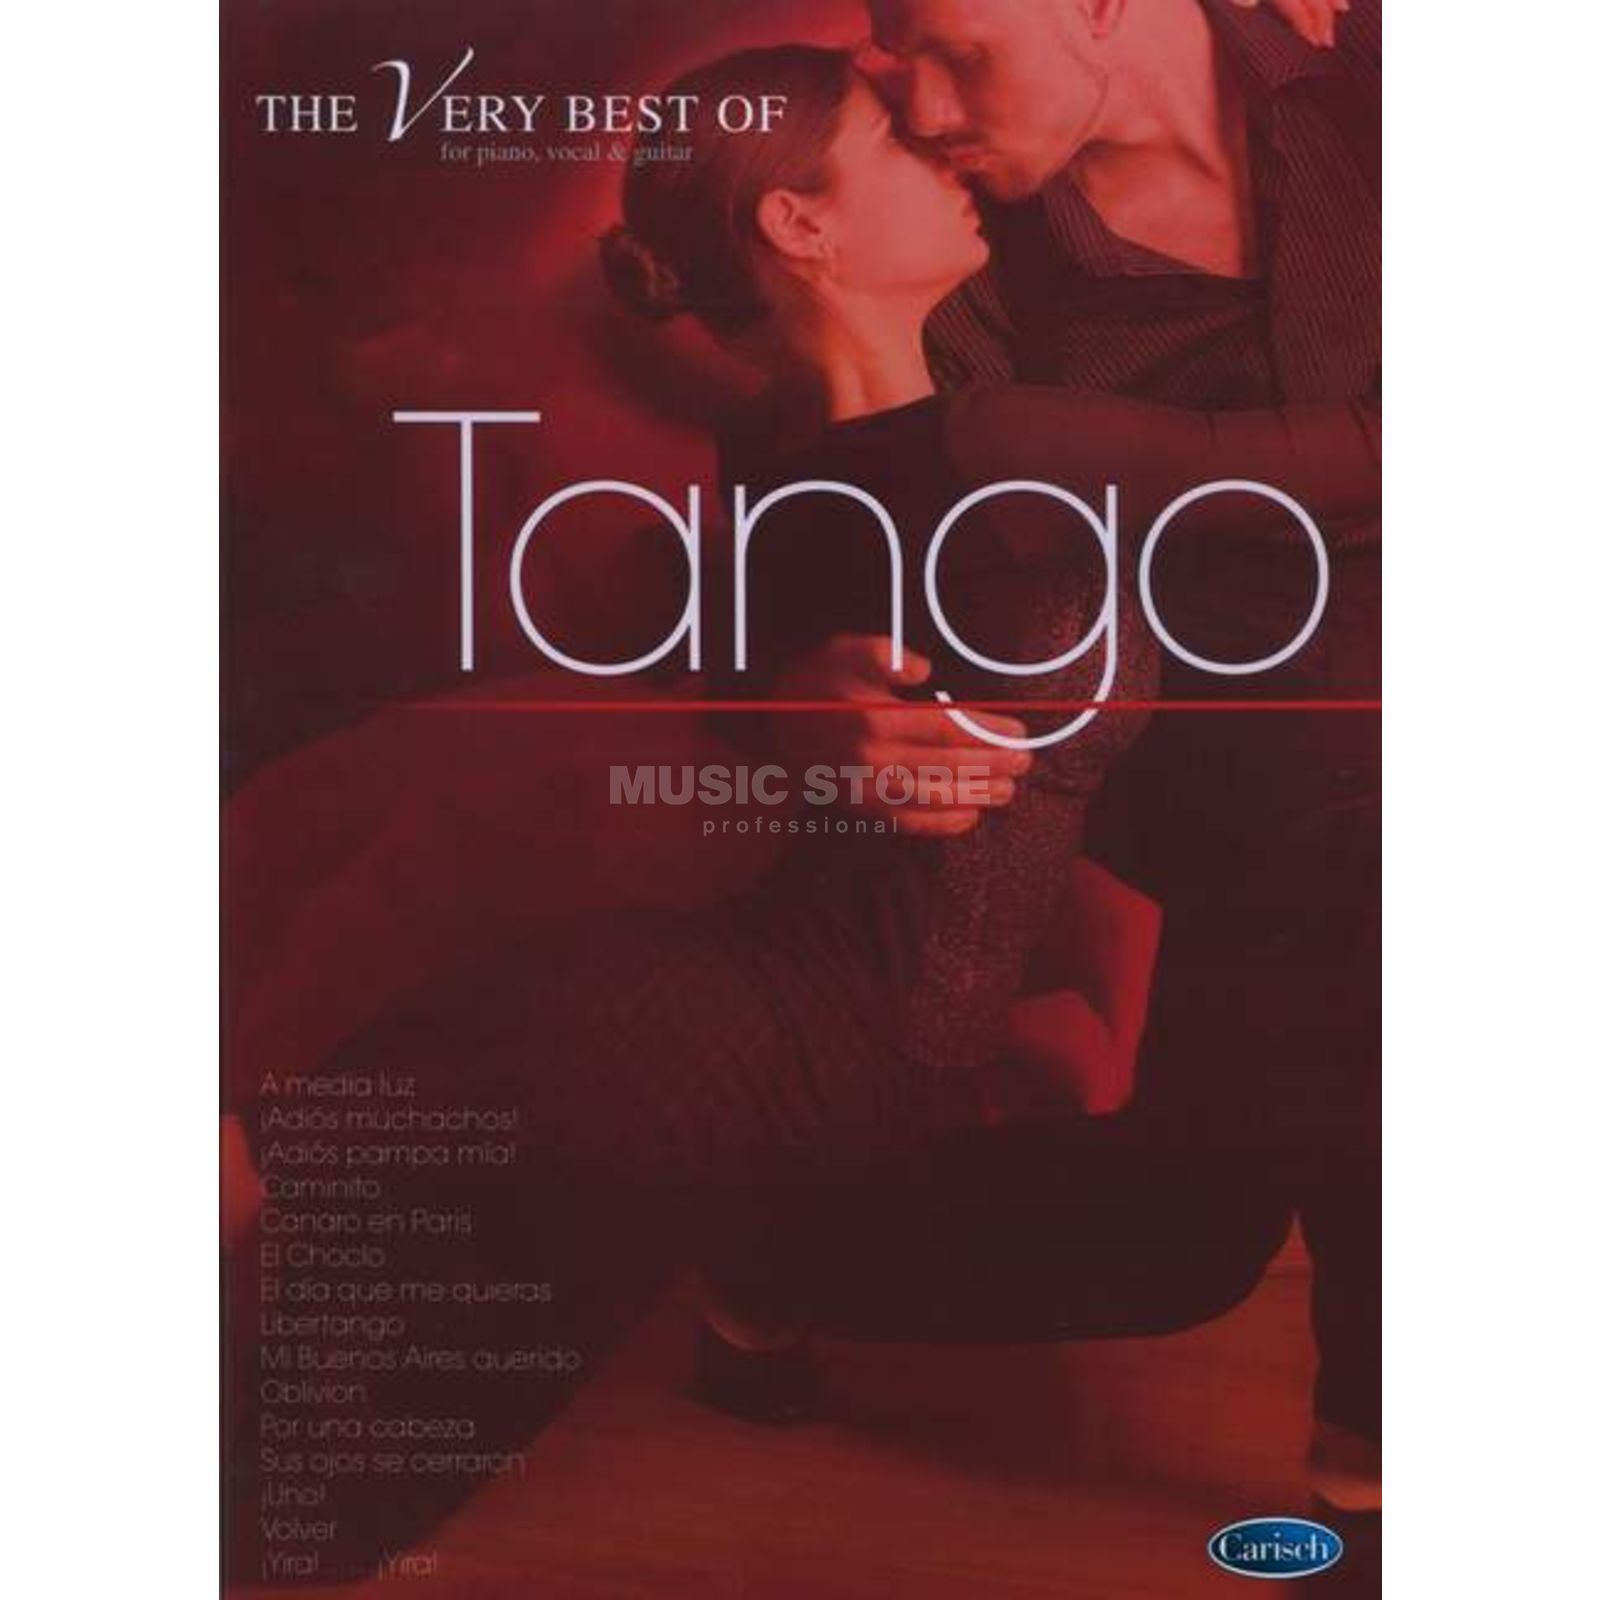 Carisch-Verlag The Very Best Of Tango Produktbild